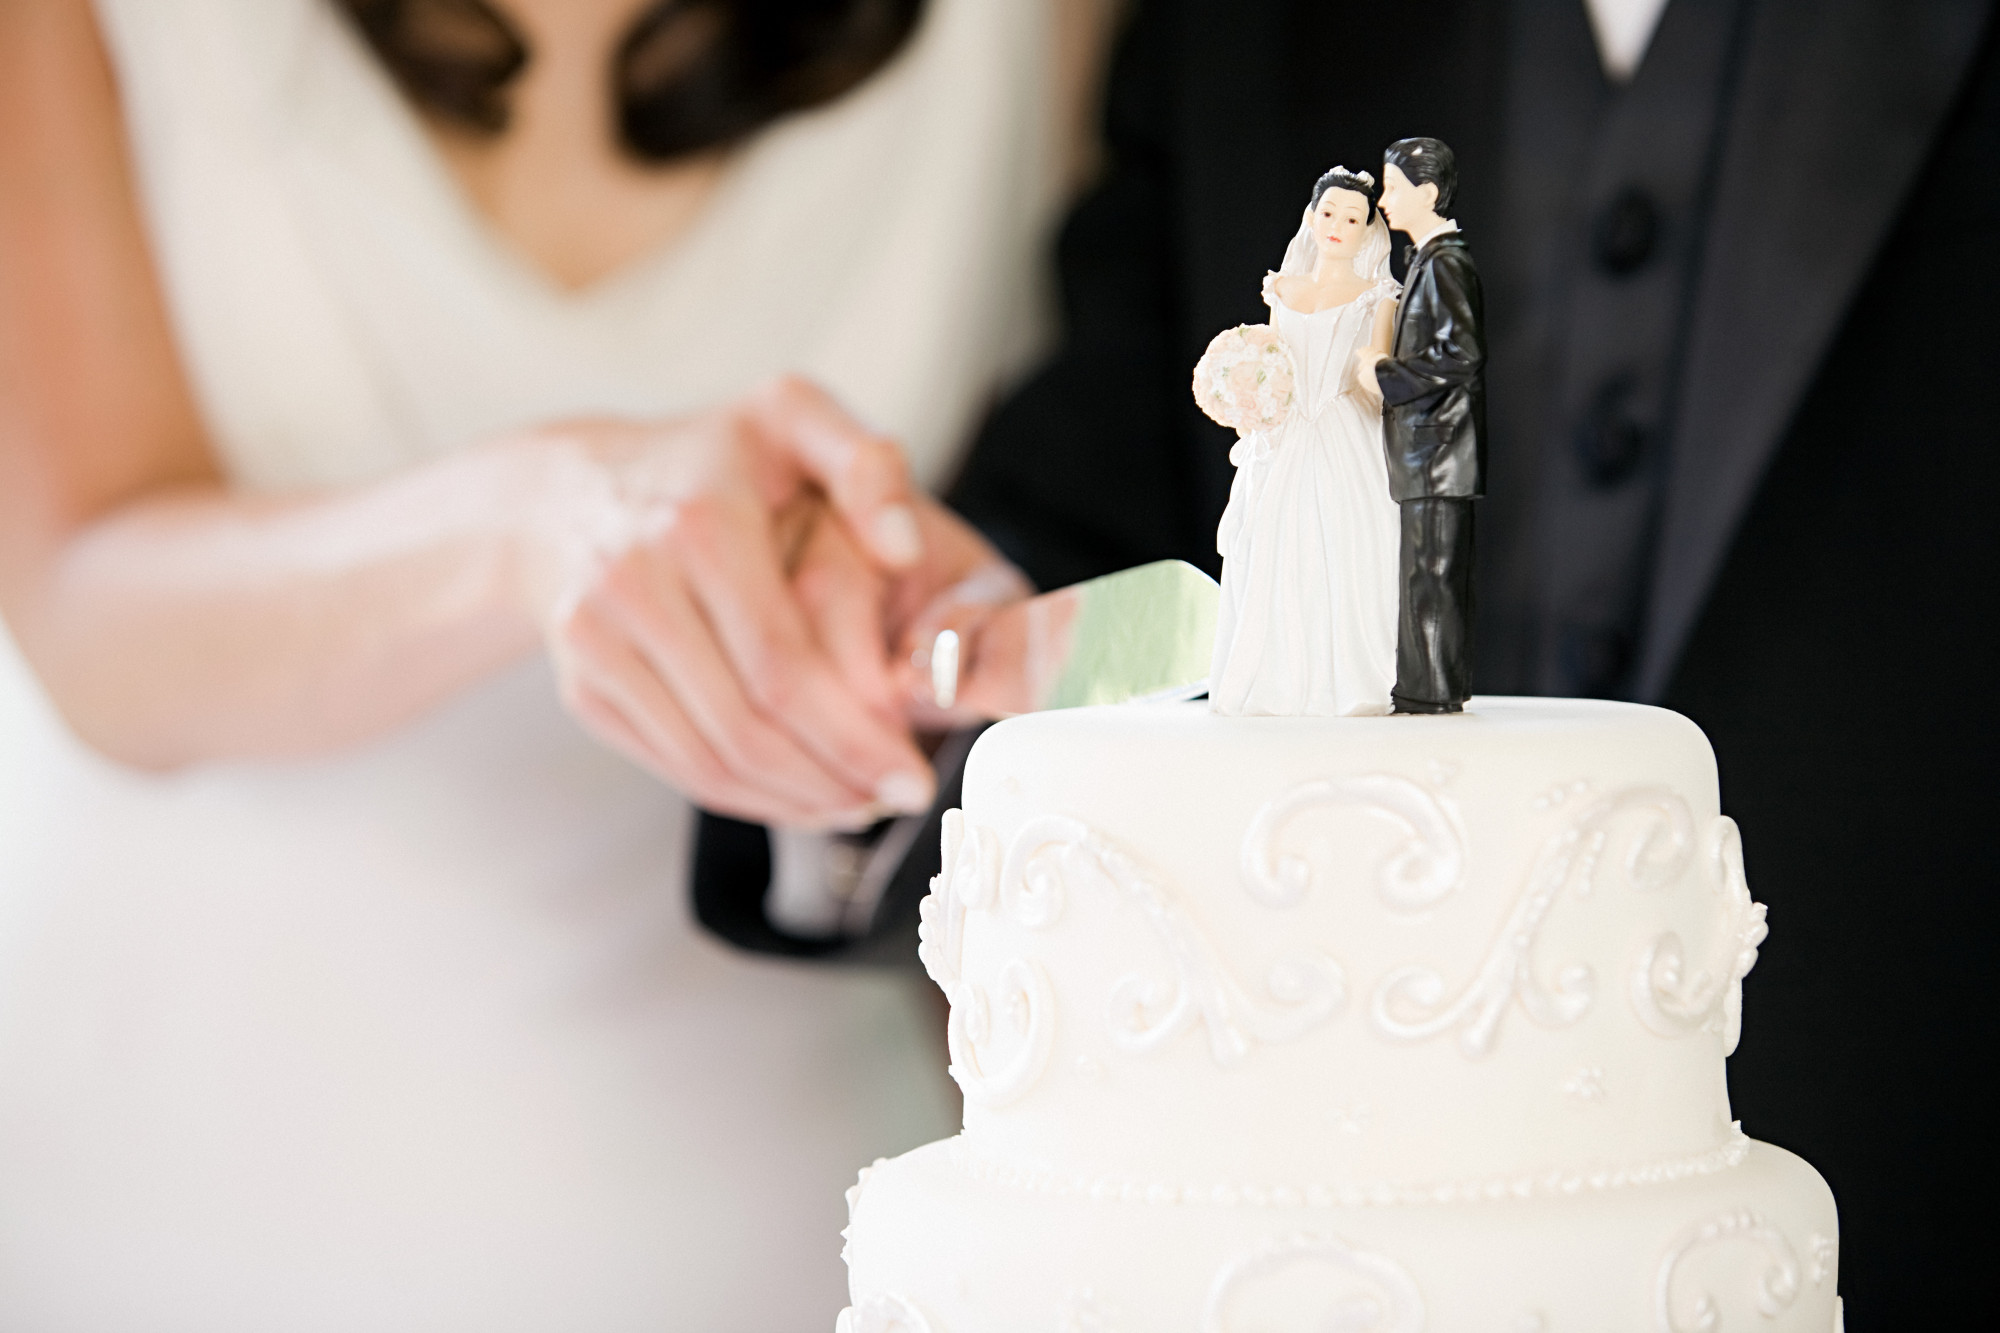 5 Fun and Yummy Things to Do With Your Leftover Wedding